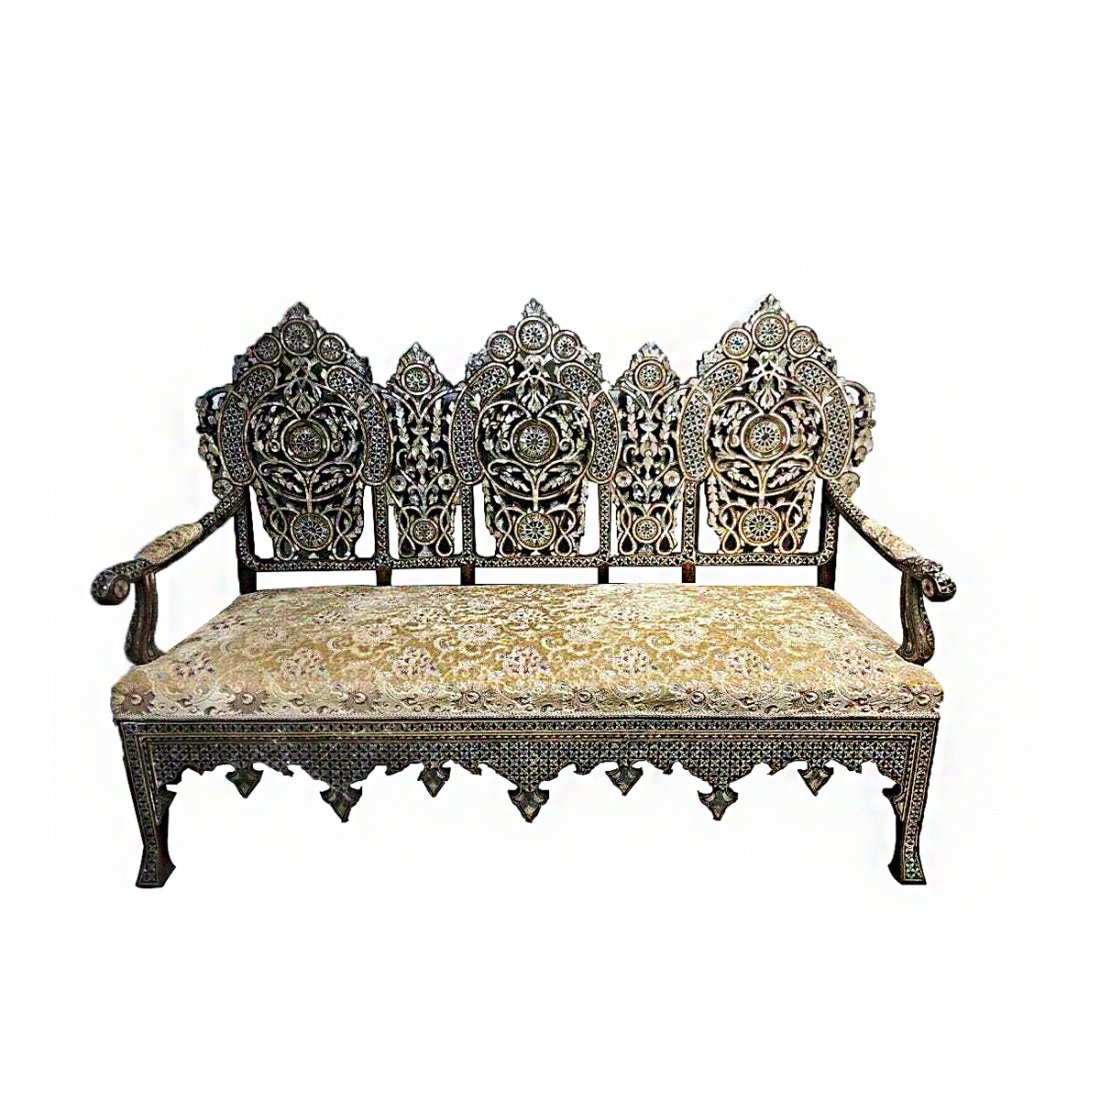 Ottoman Syrian Mother Of Pearls Wood Couch c.19th cent